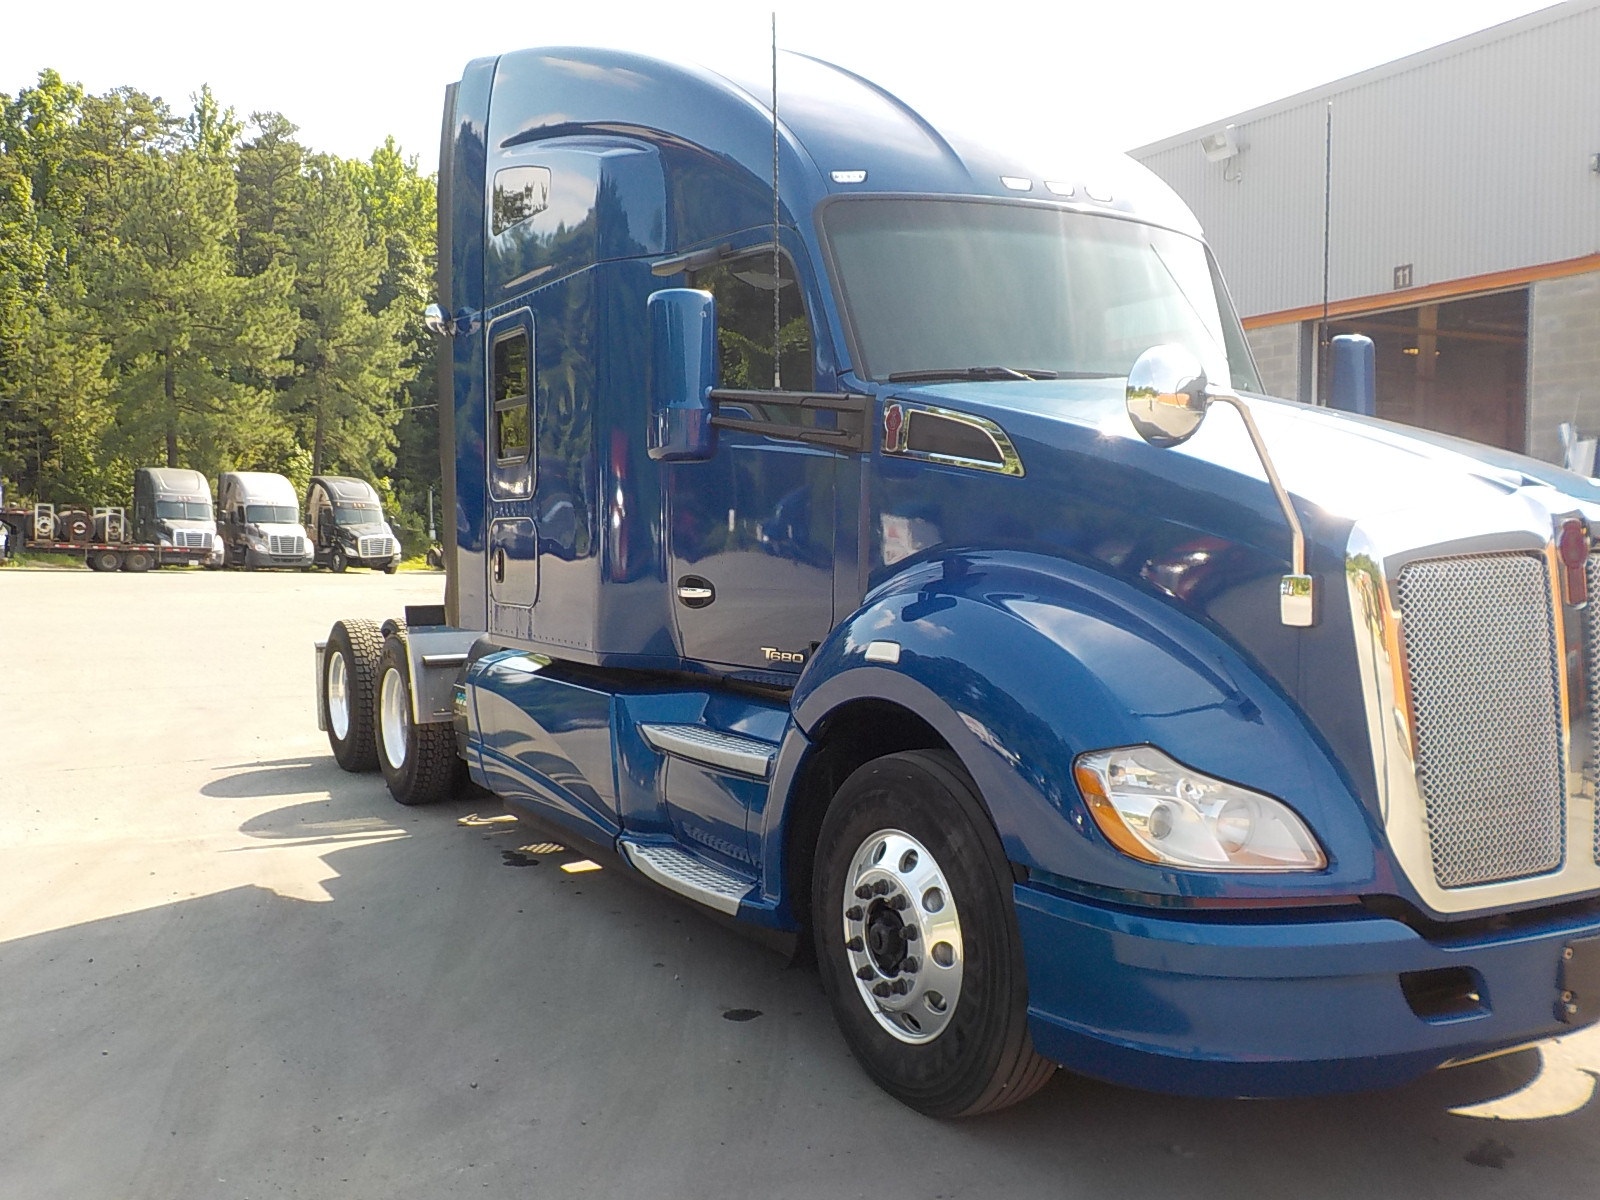 USED 2015 KENWORTH T680 SLEEPER TRUCK #125405